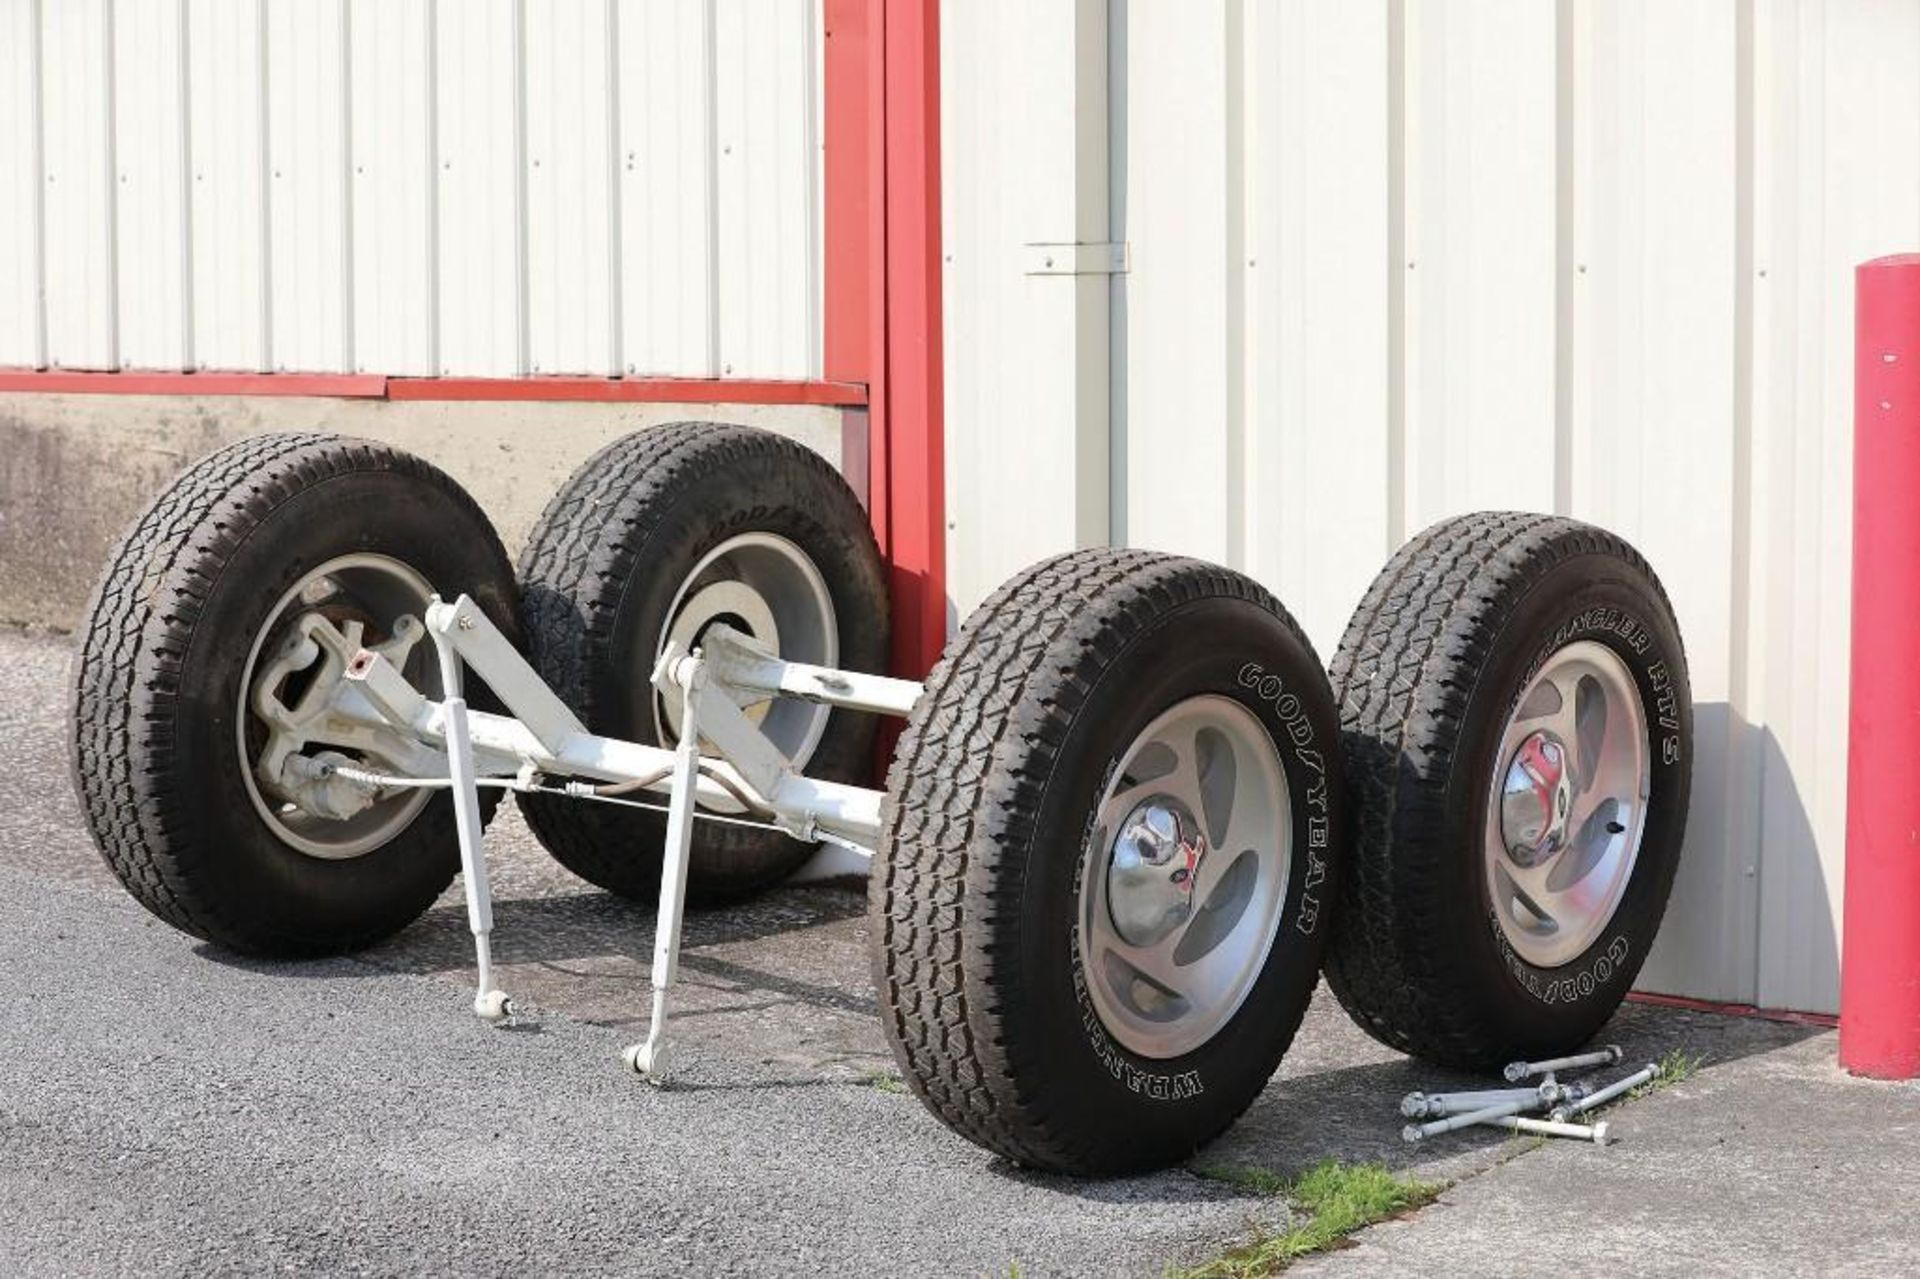 5th Wheel Hitch Wagon, Extra Front & Rear Axles for Transport Loading - Image 3 of 3